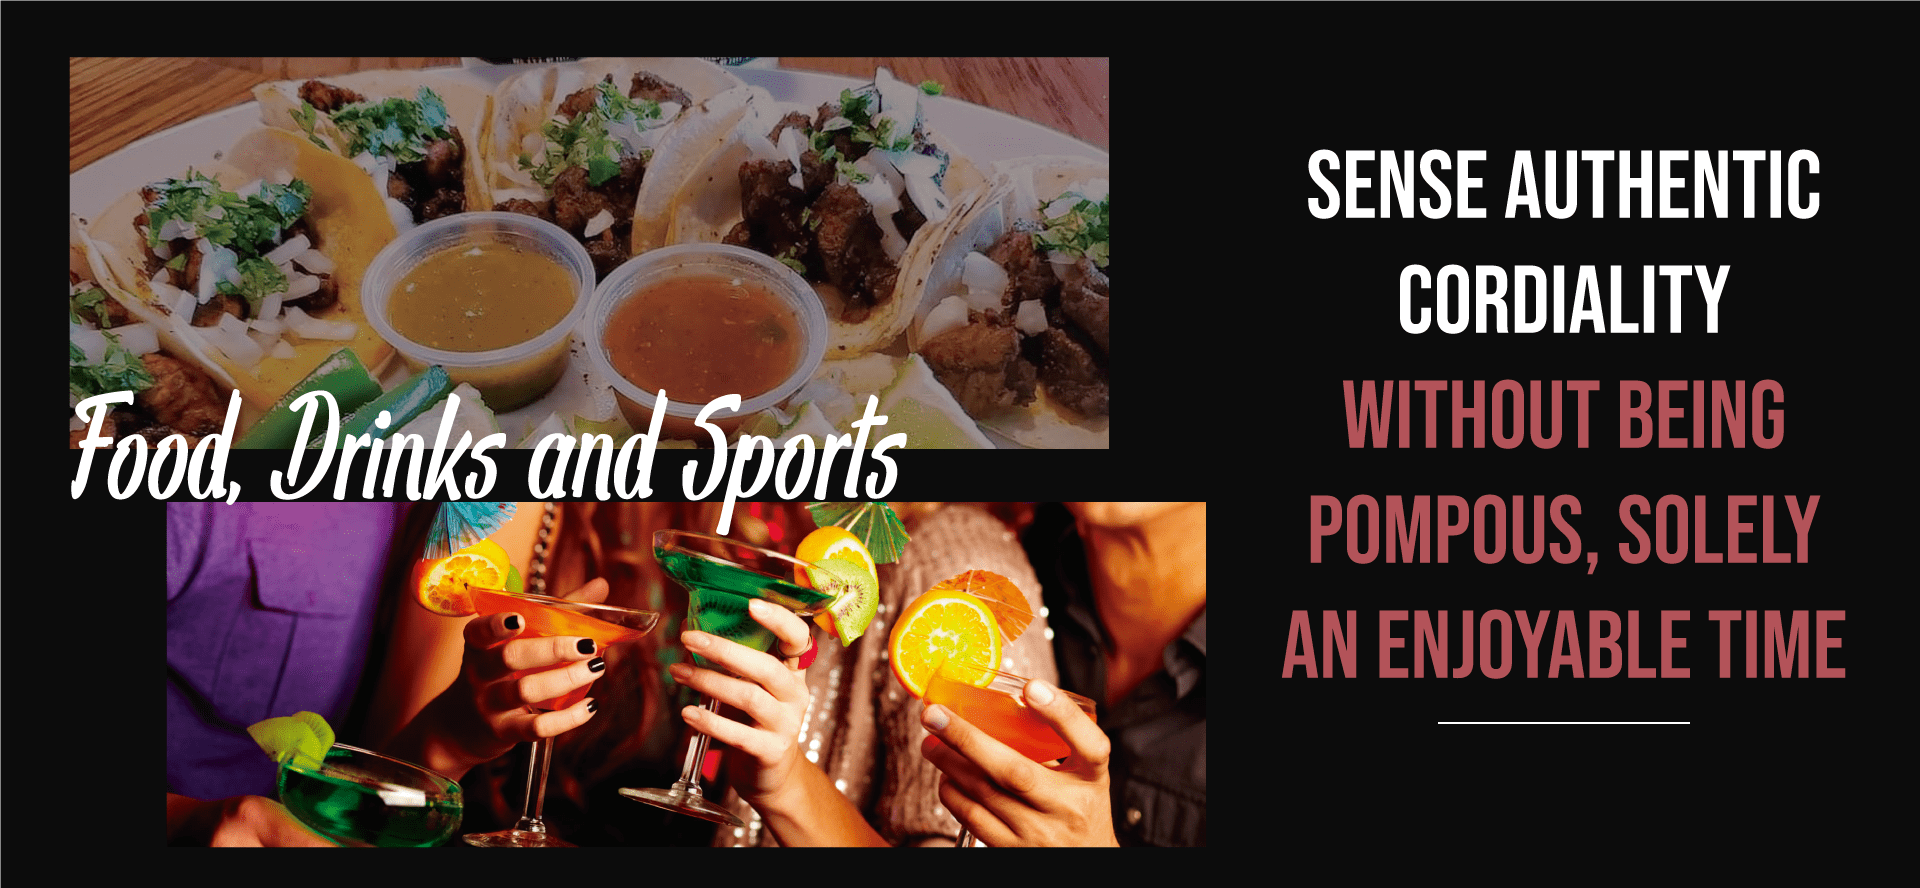 food drinks and sports